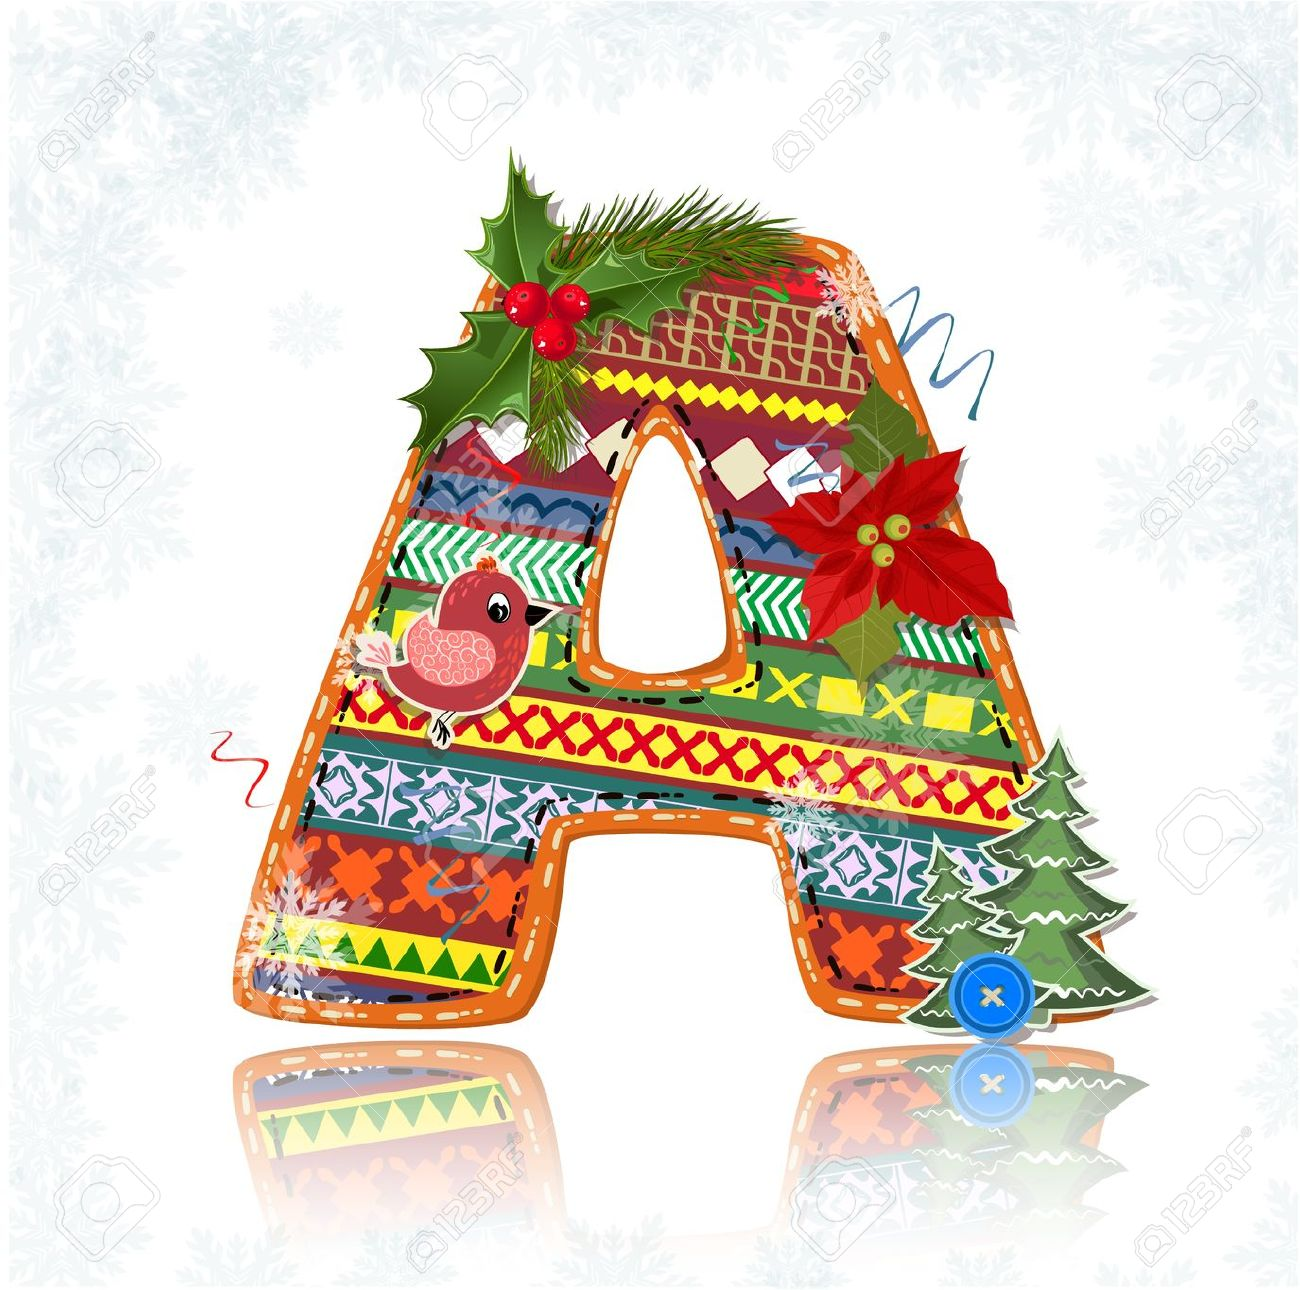 Free Christmas Cliparts Letters Download Free Clip Art